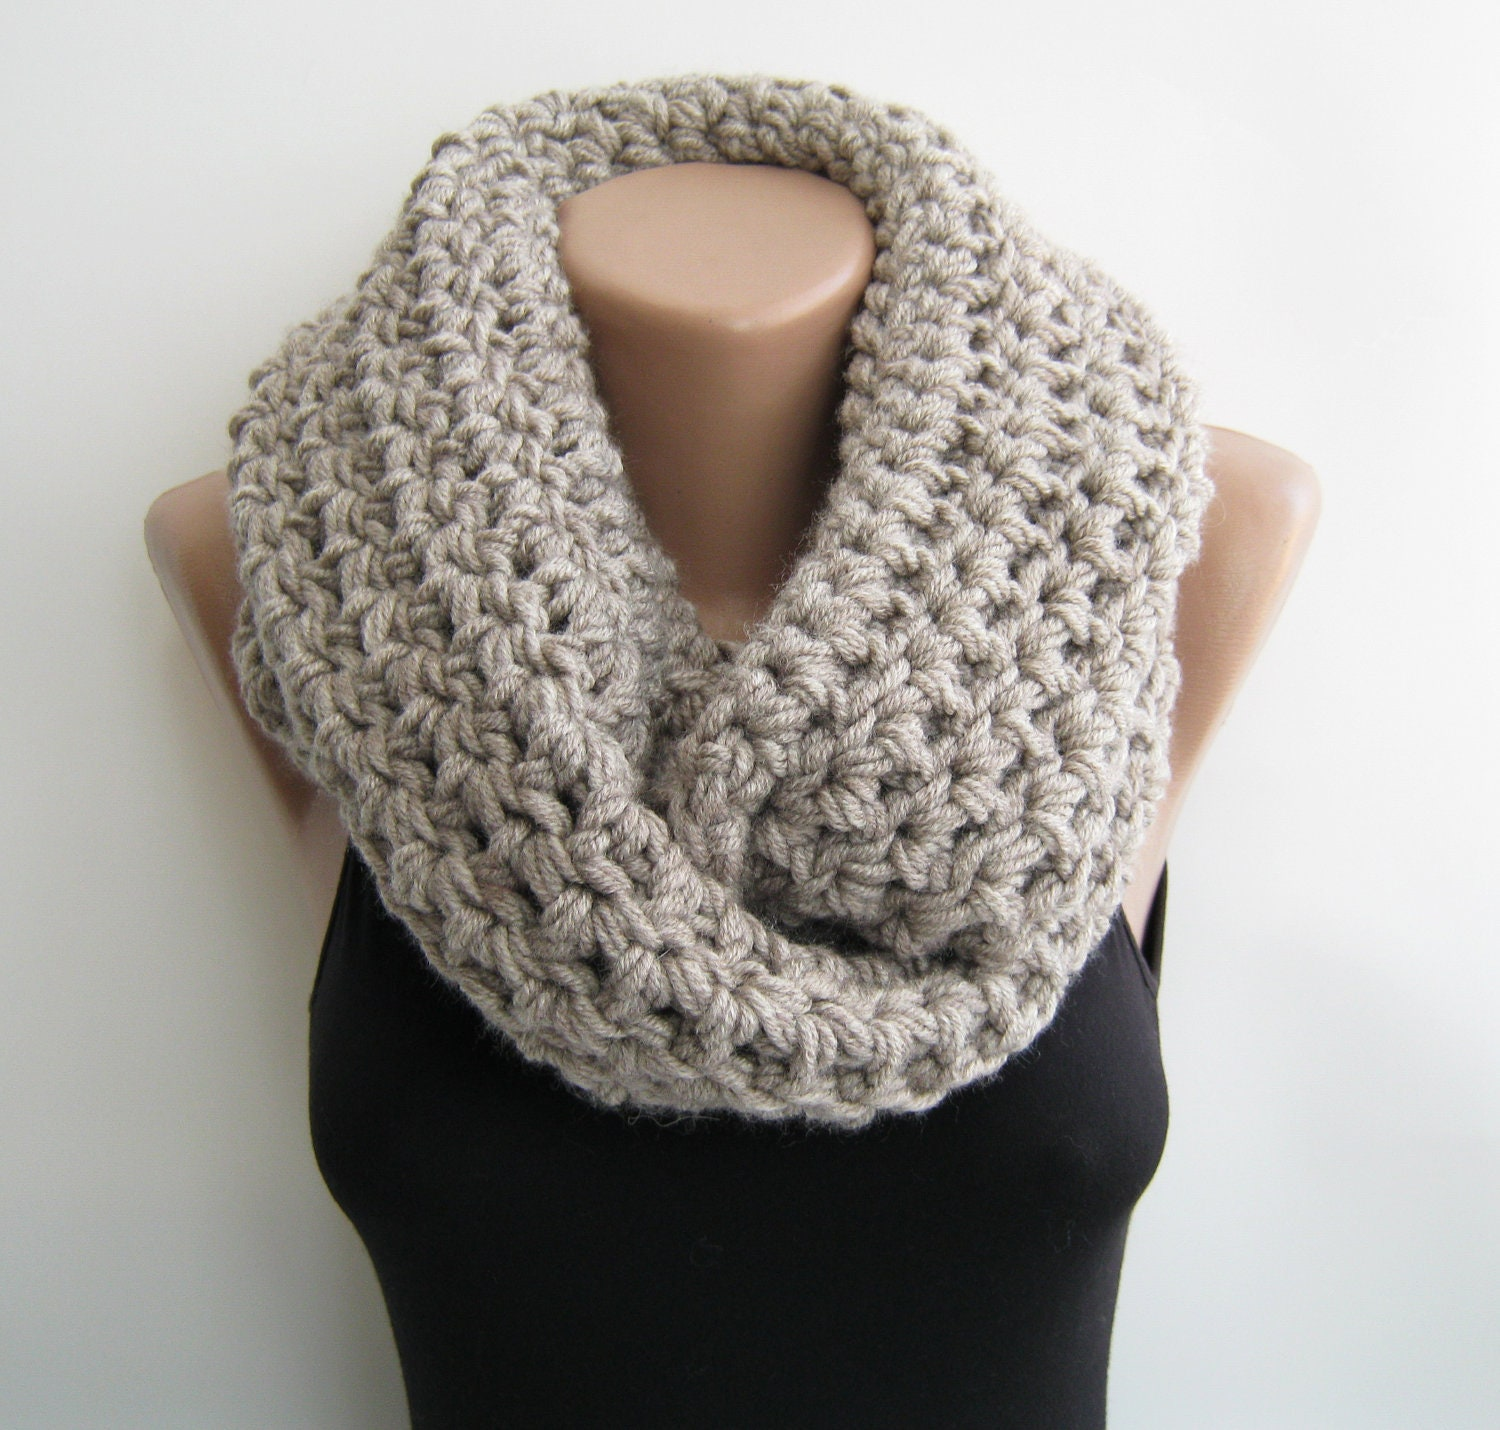 Crochet infinity scarf oat meal chunky circle by sascarves ...